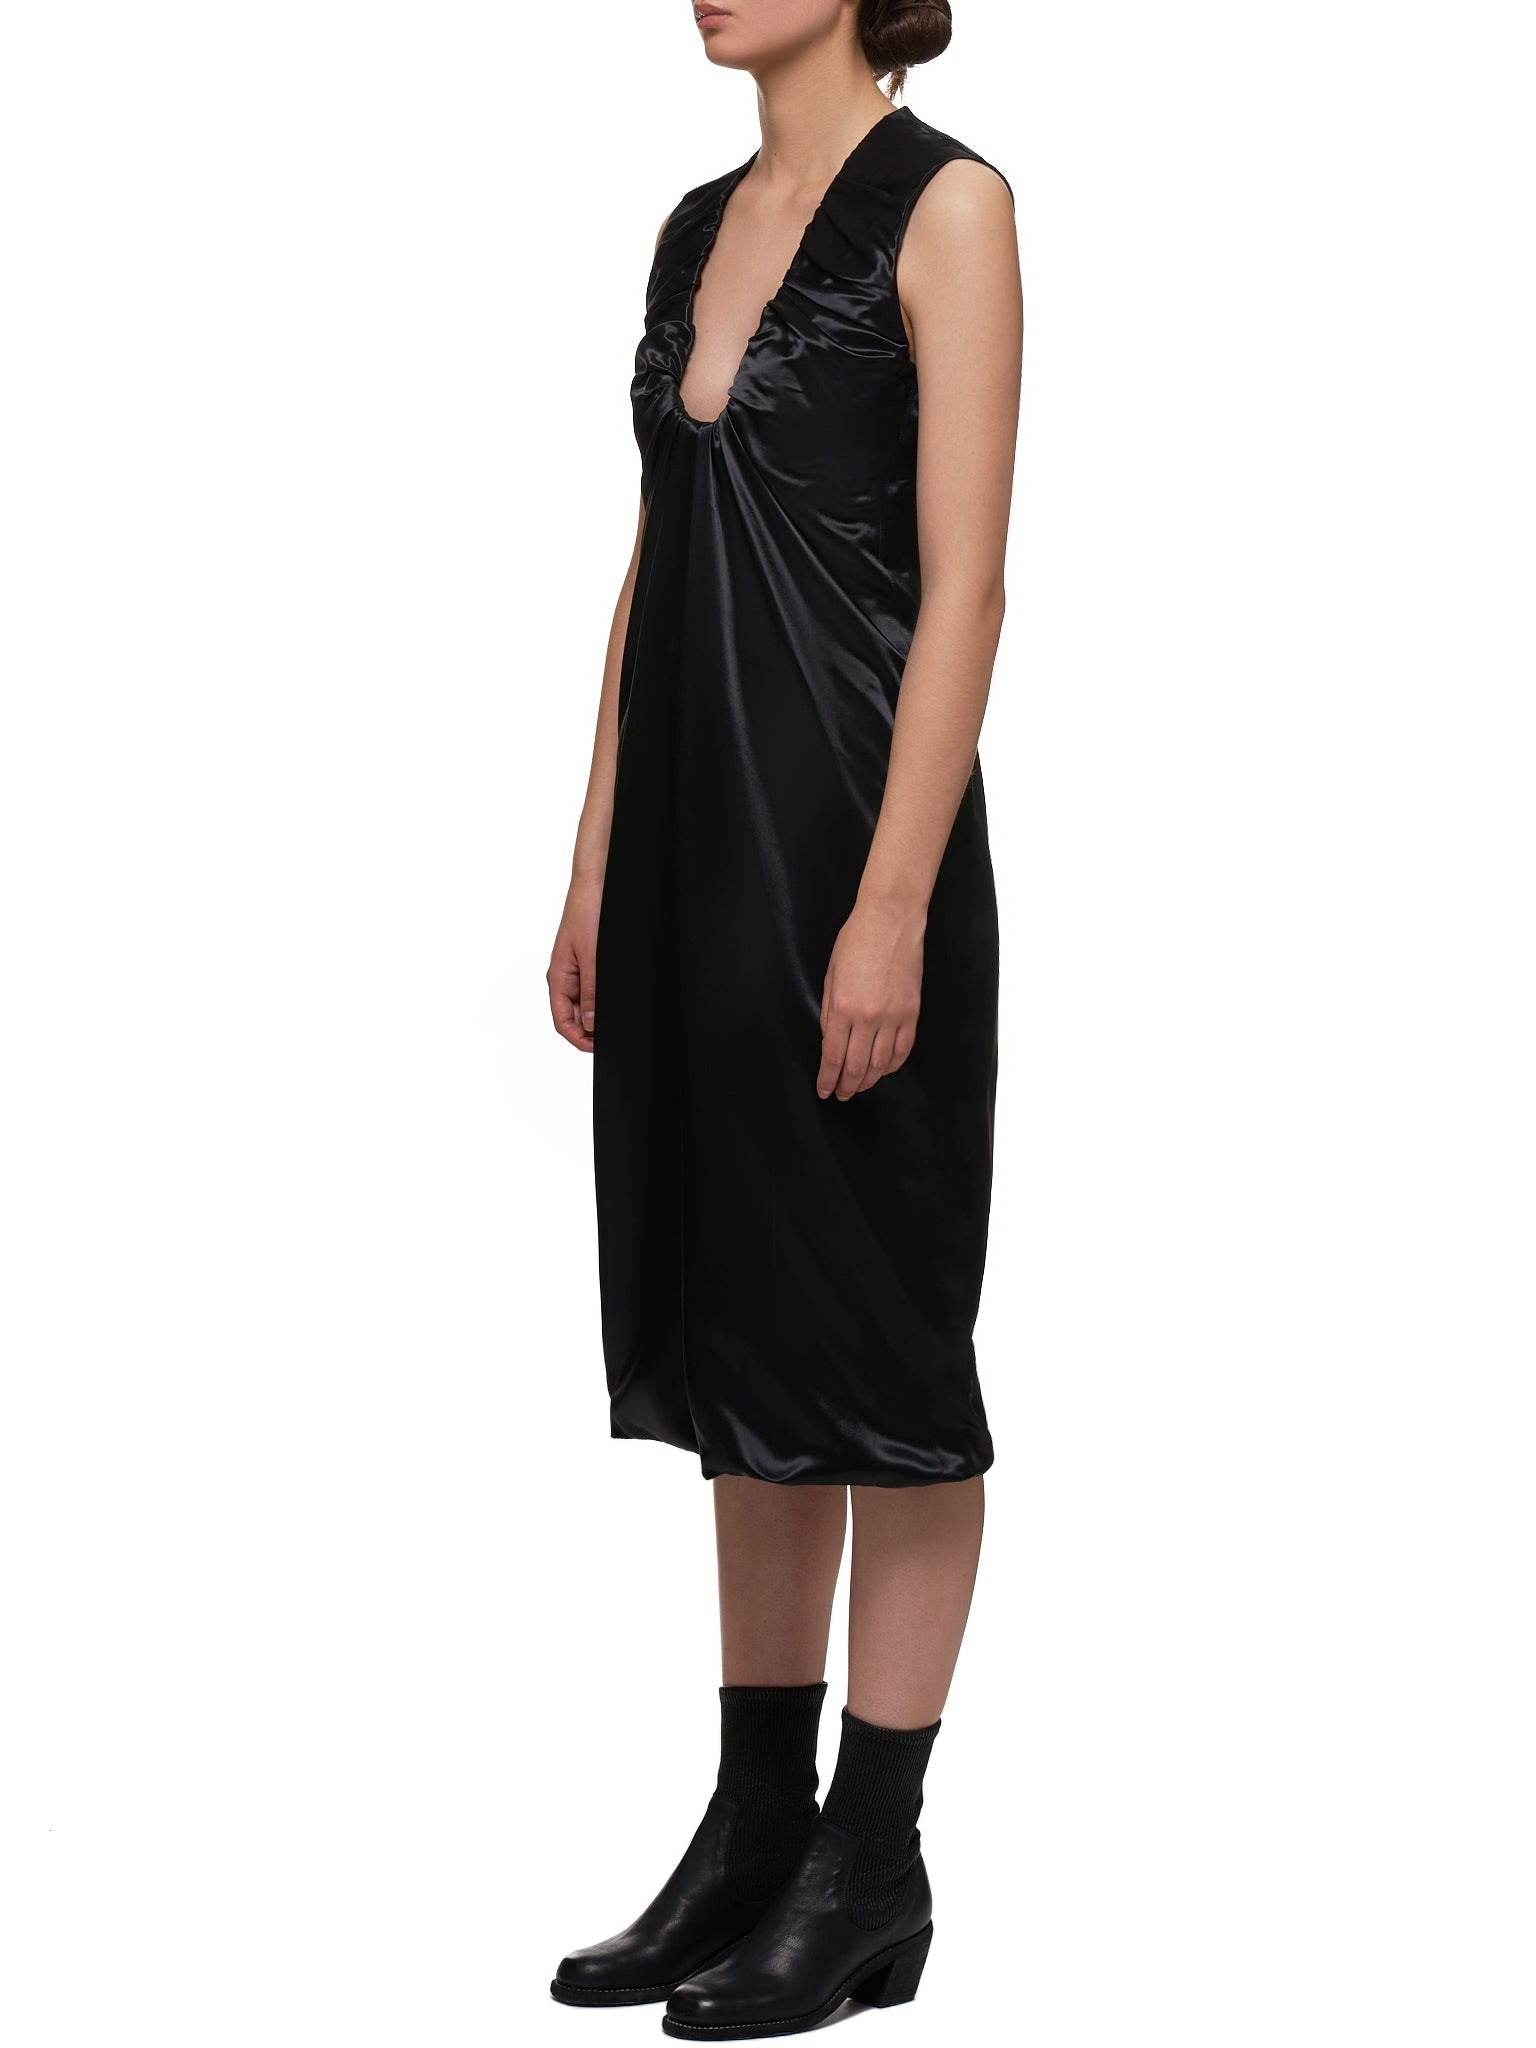 Bottega Veneta Dress - Hlorenzo Side